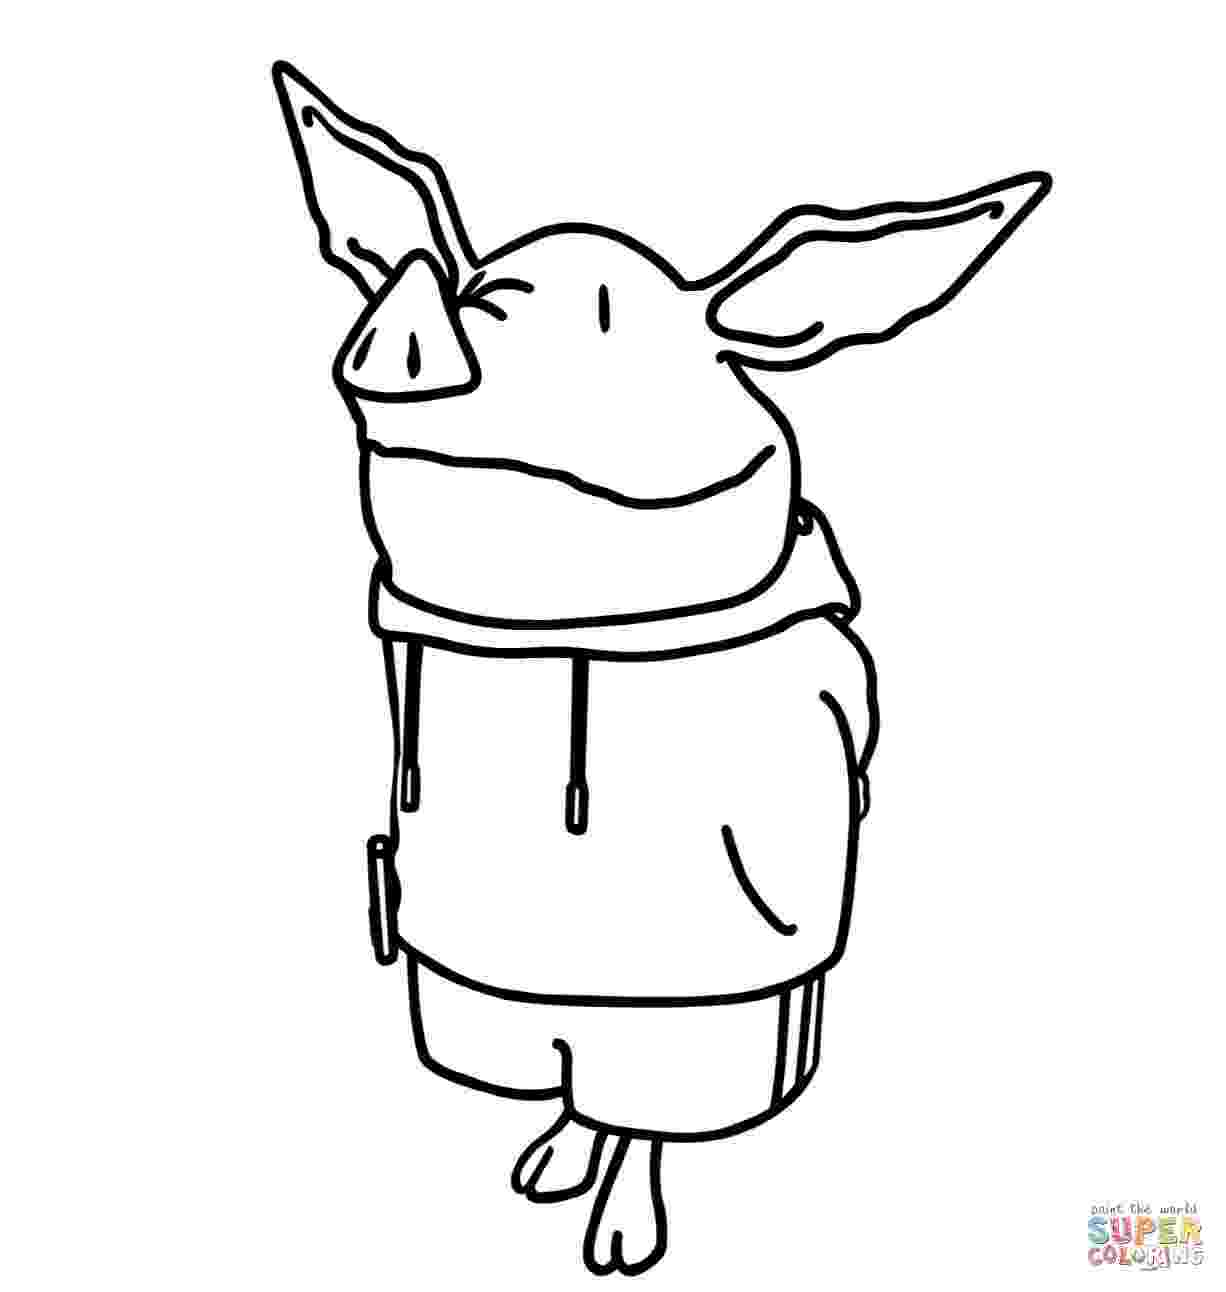 olivia the pig coloring pages olivia the pig talking to his fahter coloring page netart pages coloring olivia pig the